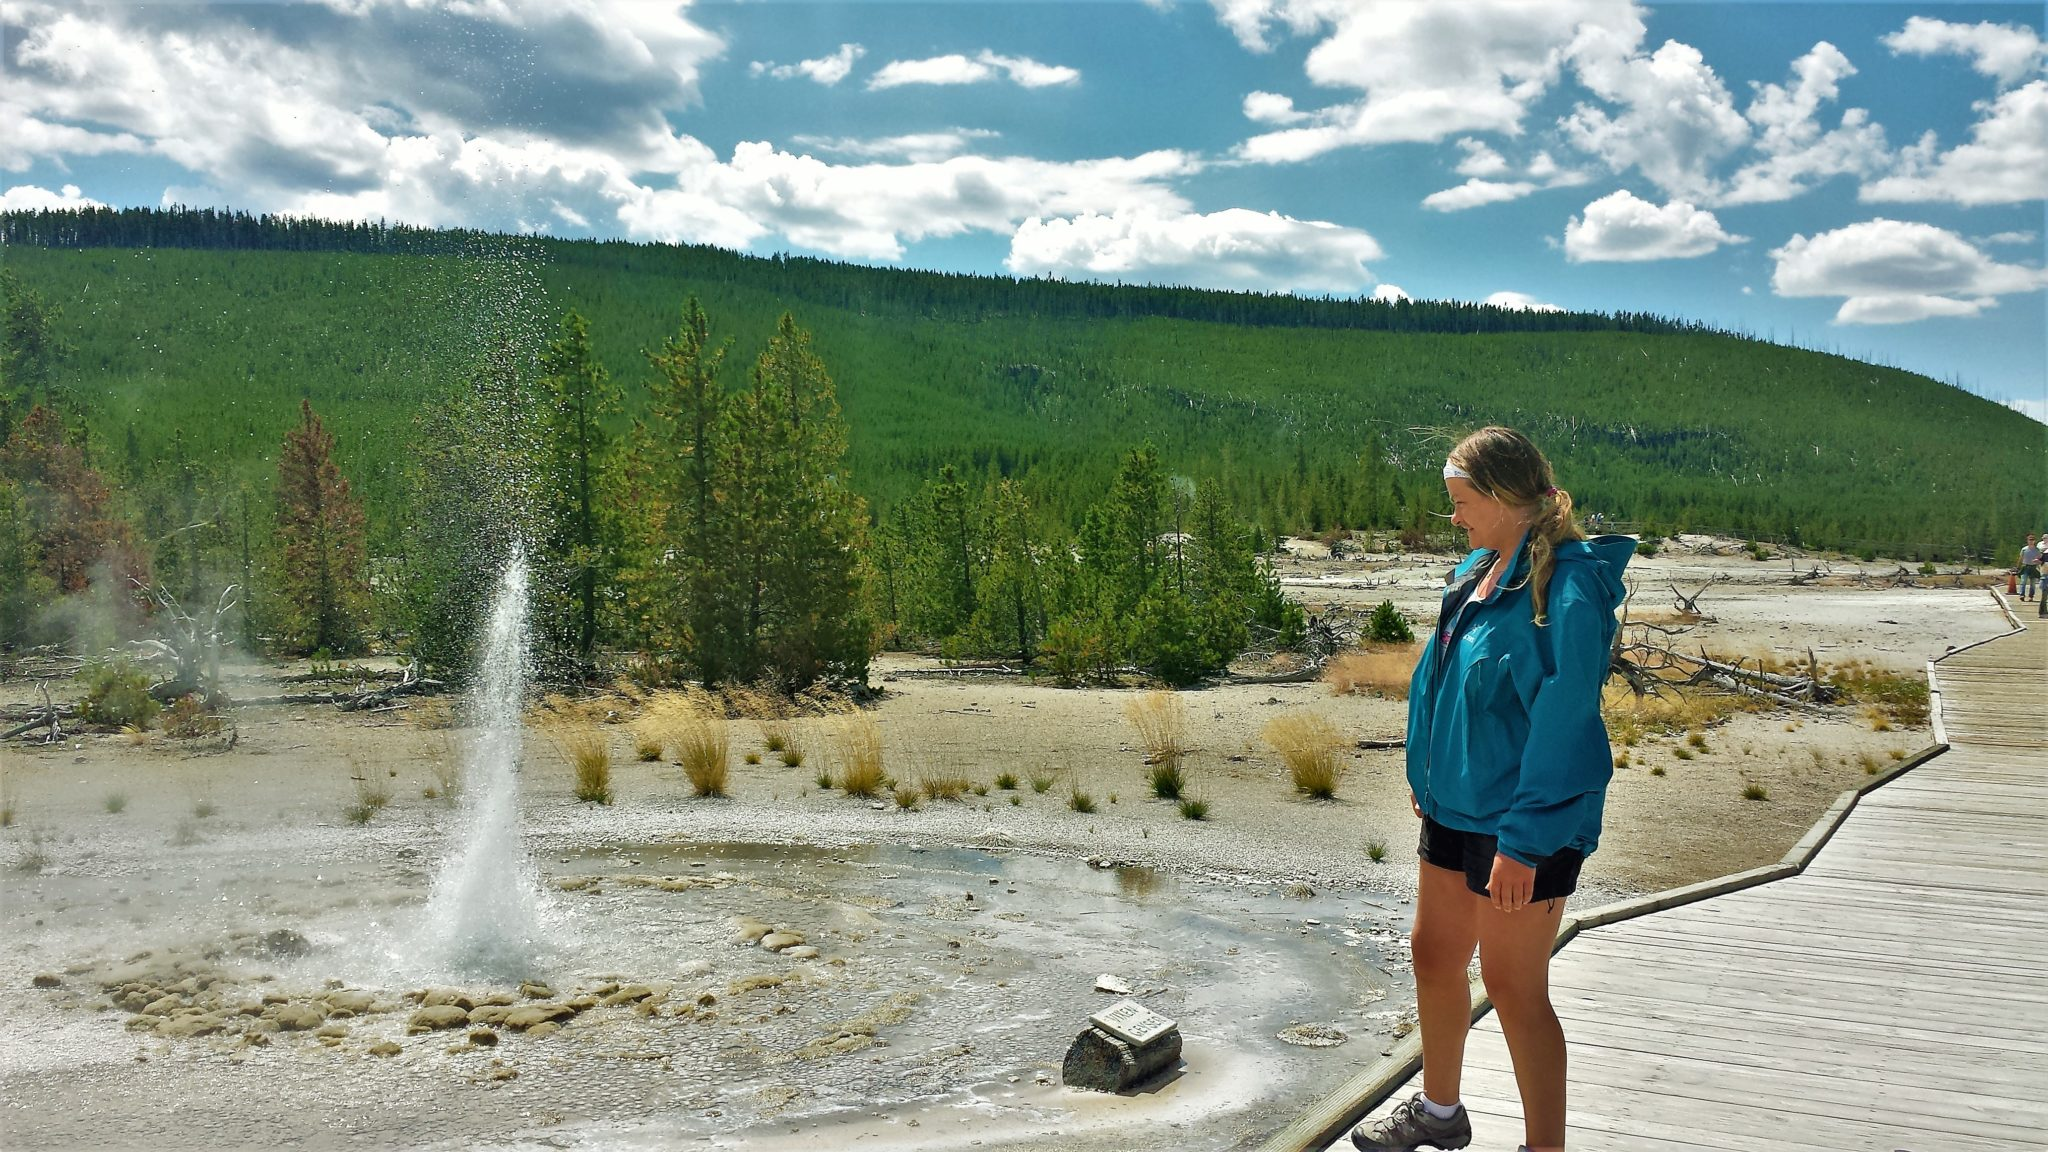 Arcteryx beta sl jacket review, yellowstone national park climate